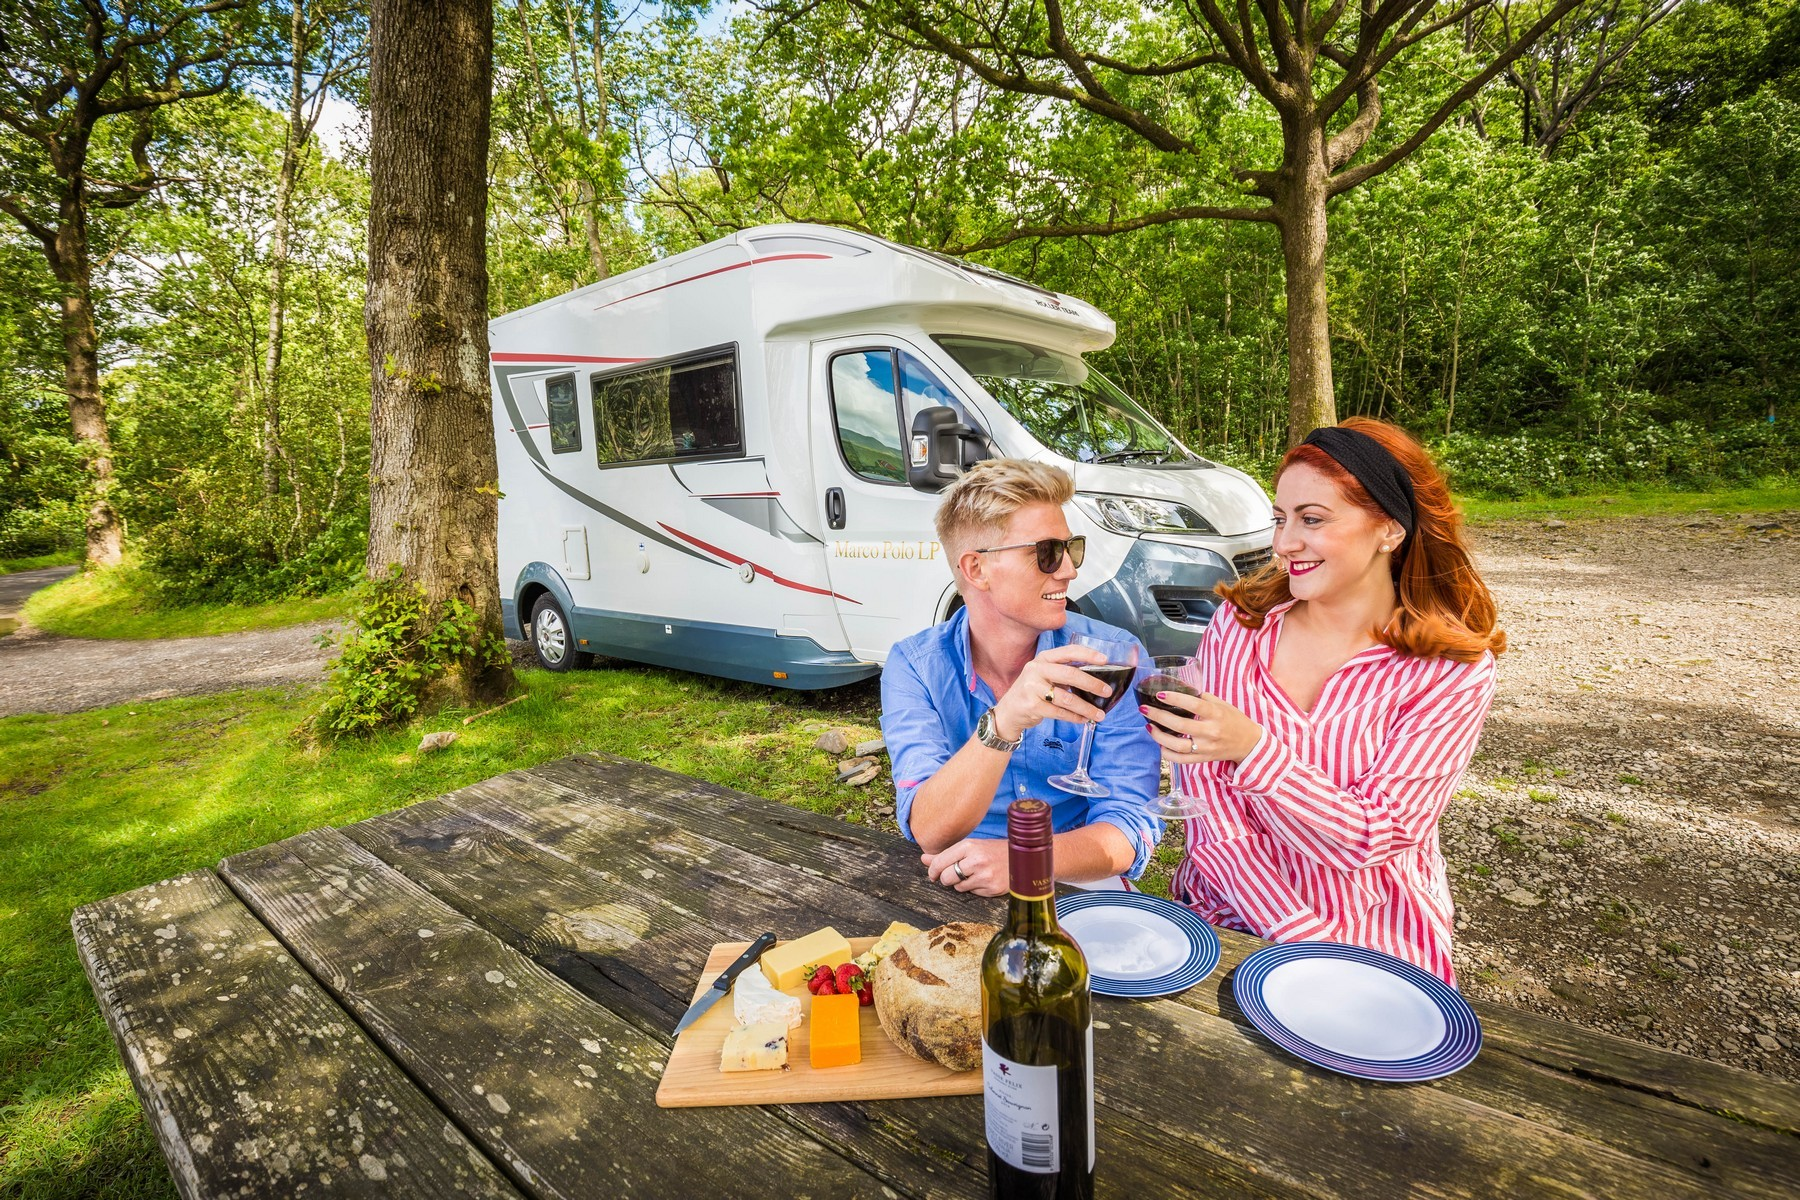 Motorhome from Freedhome Luxury Motorhome Hire, Photo: Dandelion Photography UK